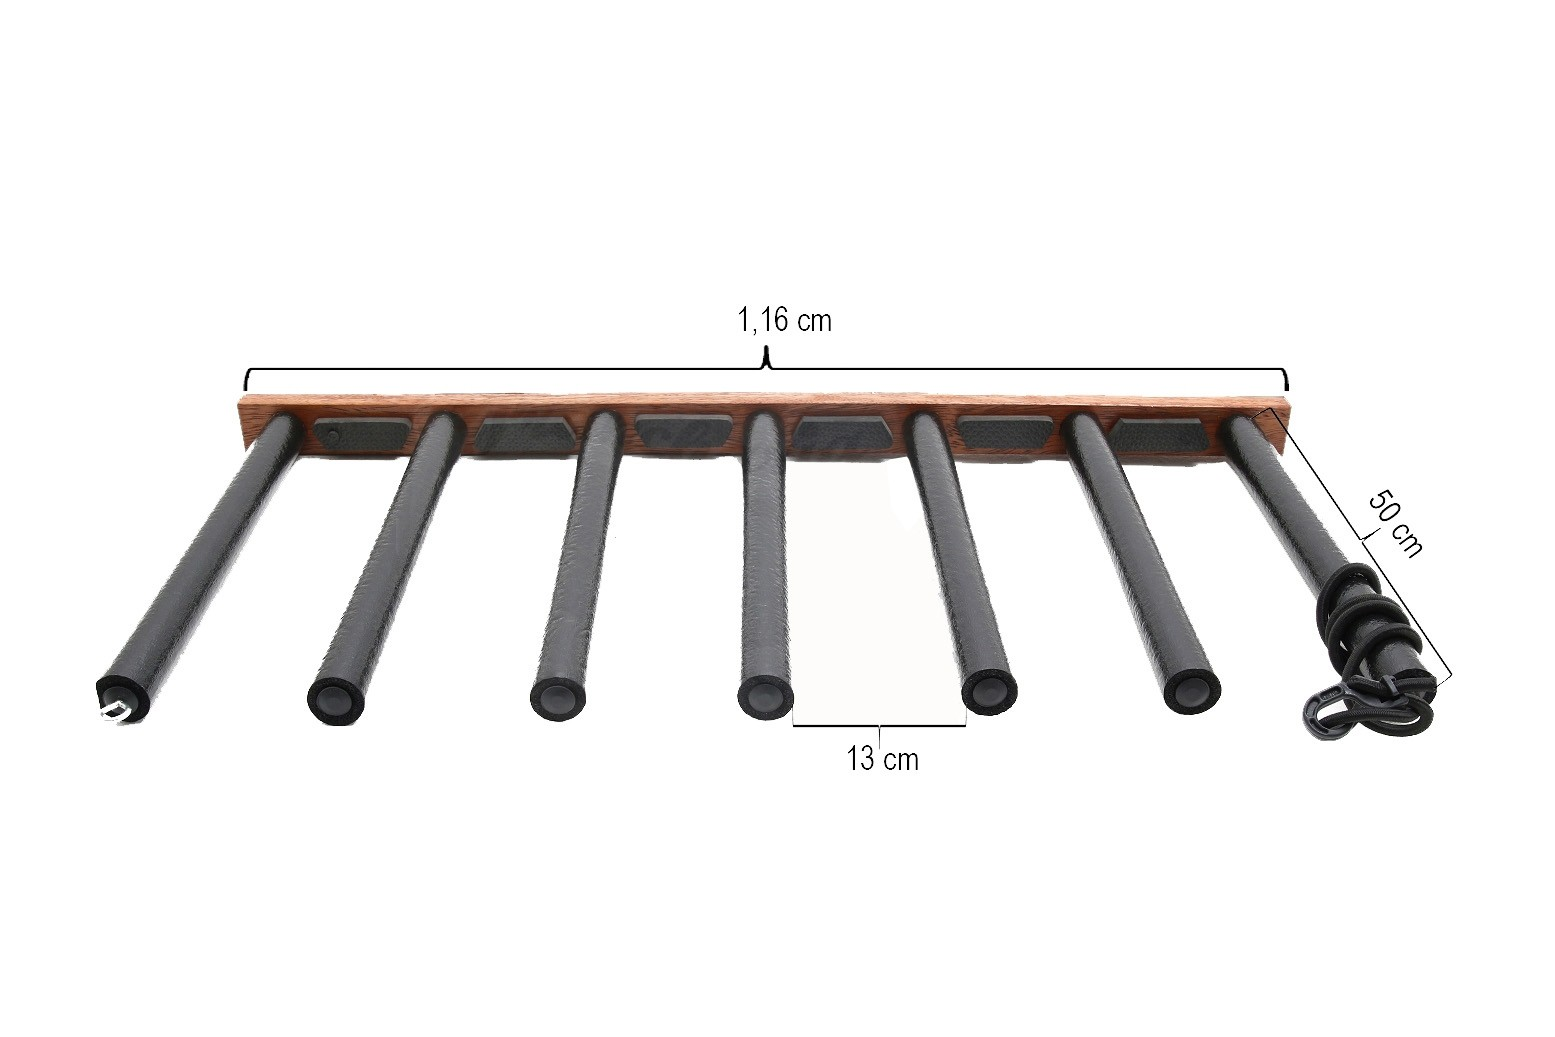 Rack Para 6 Pranchas Stand Up Paddle - Vertical - Madeira | Prancharia